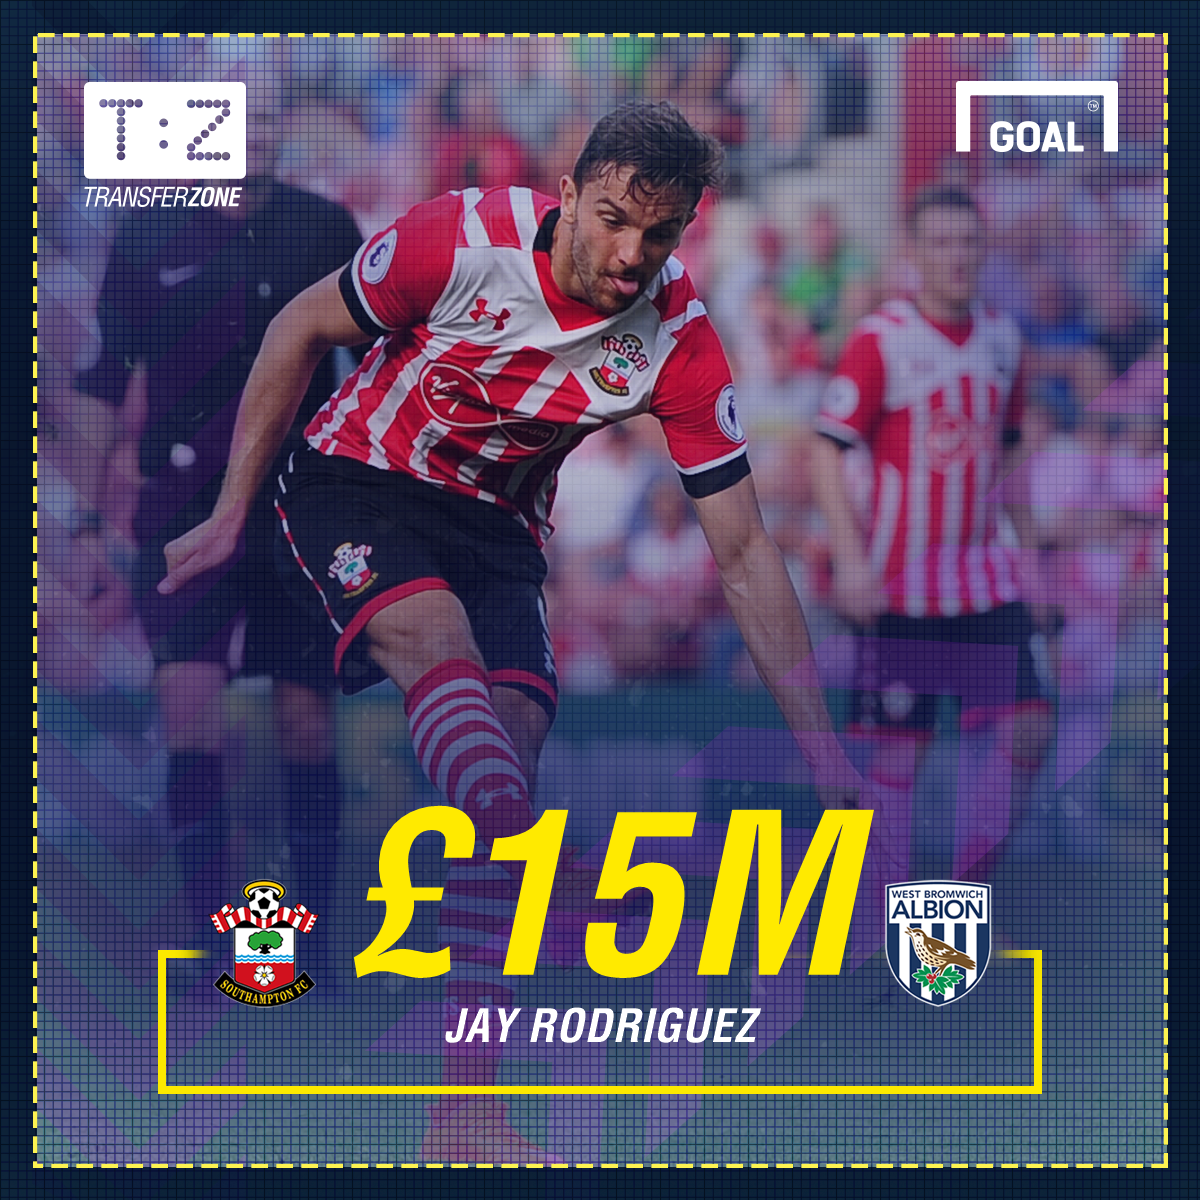 West Brom set to sign Jay Rodriguez in £15m deal from Southampton